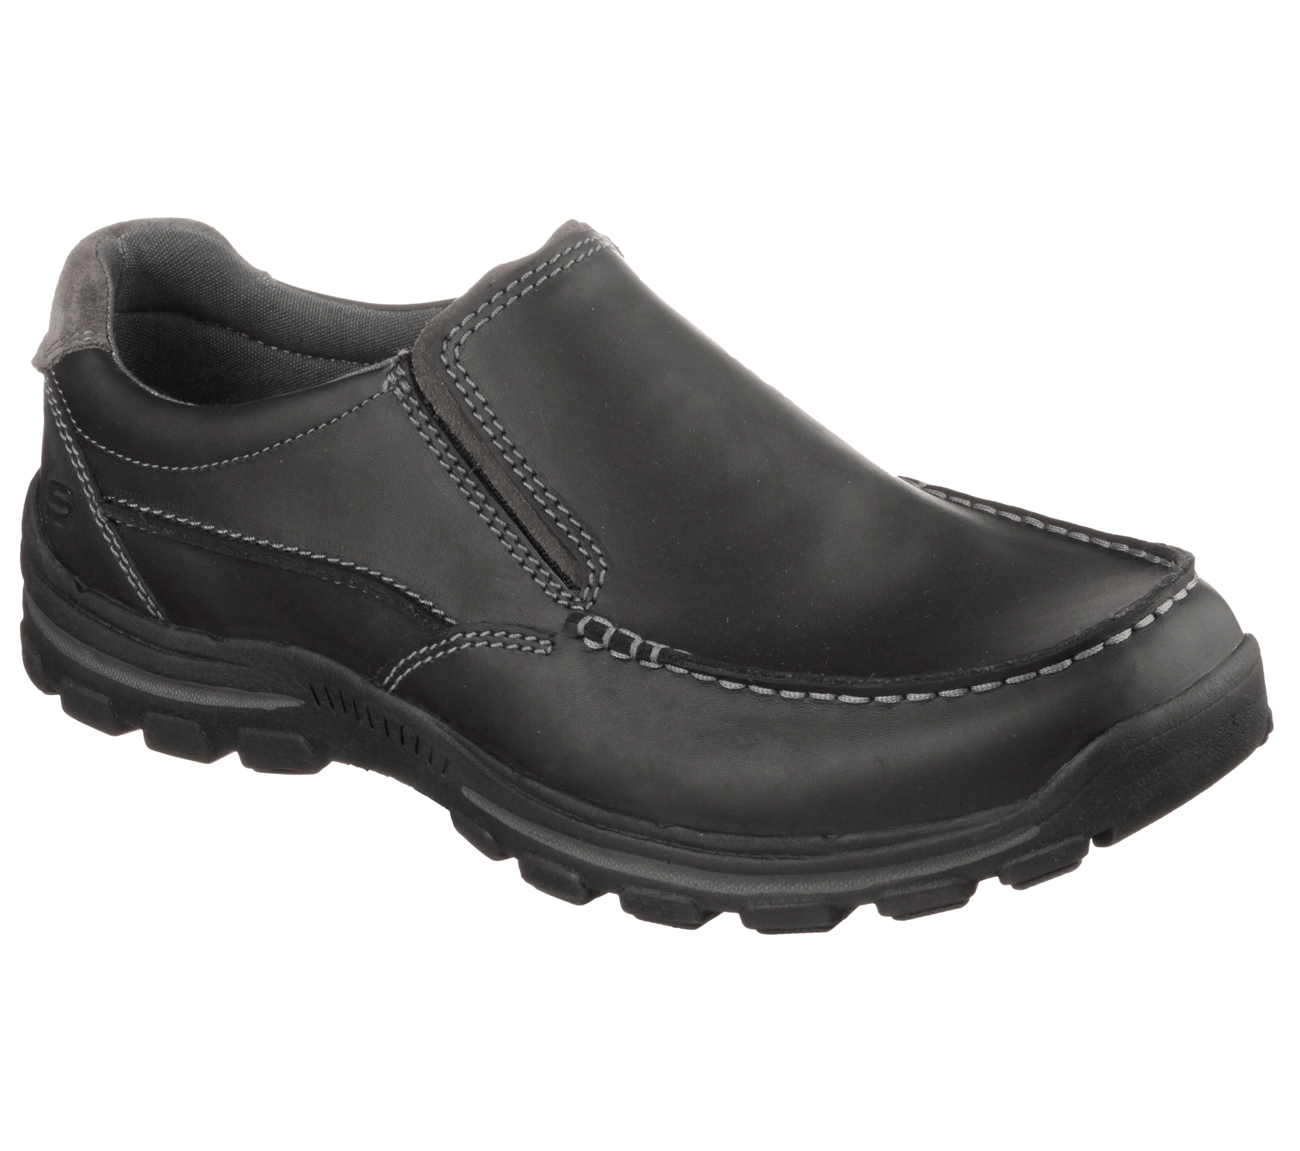 rayland women Don't miss our deals and low prices $11997 for skechers 64502b men's braver - rayland casual shoes.